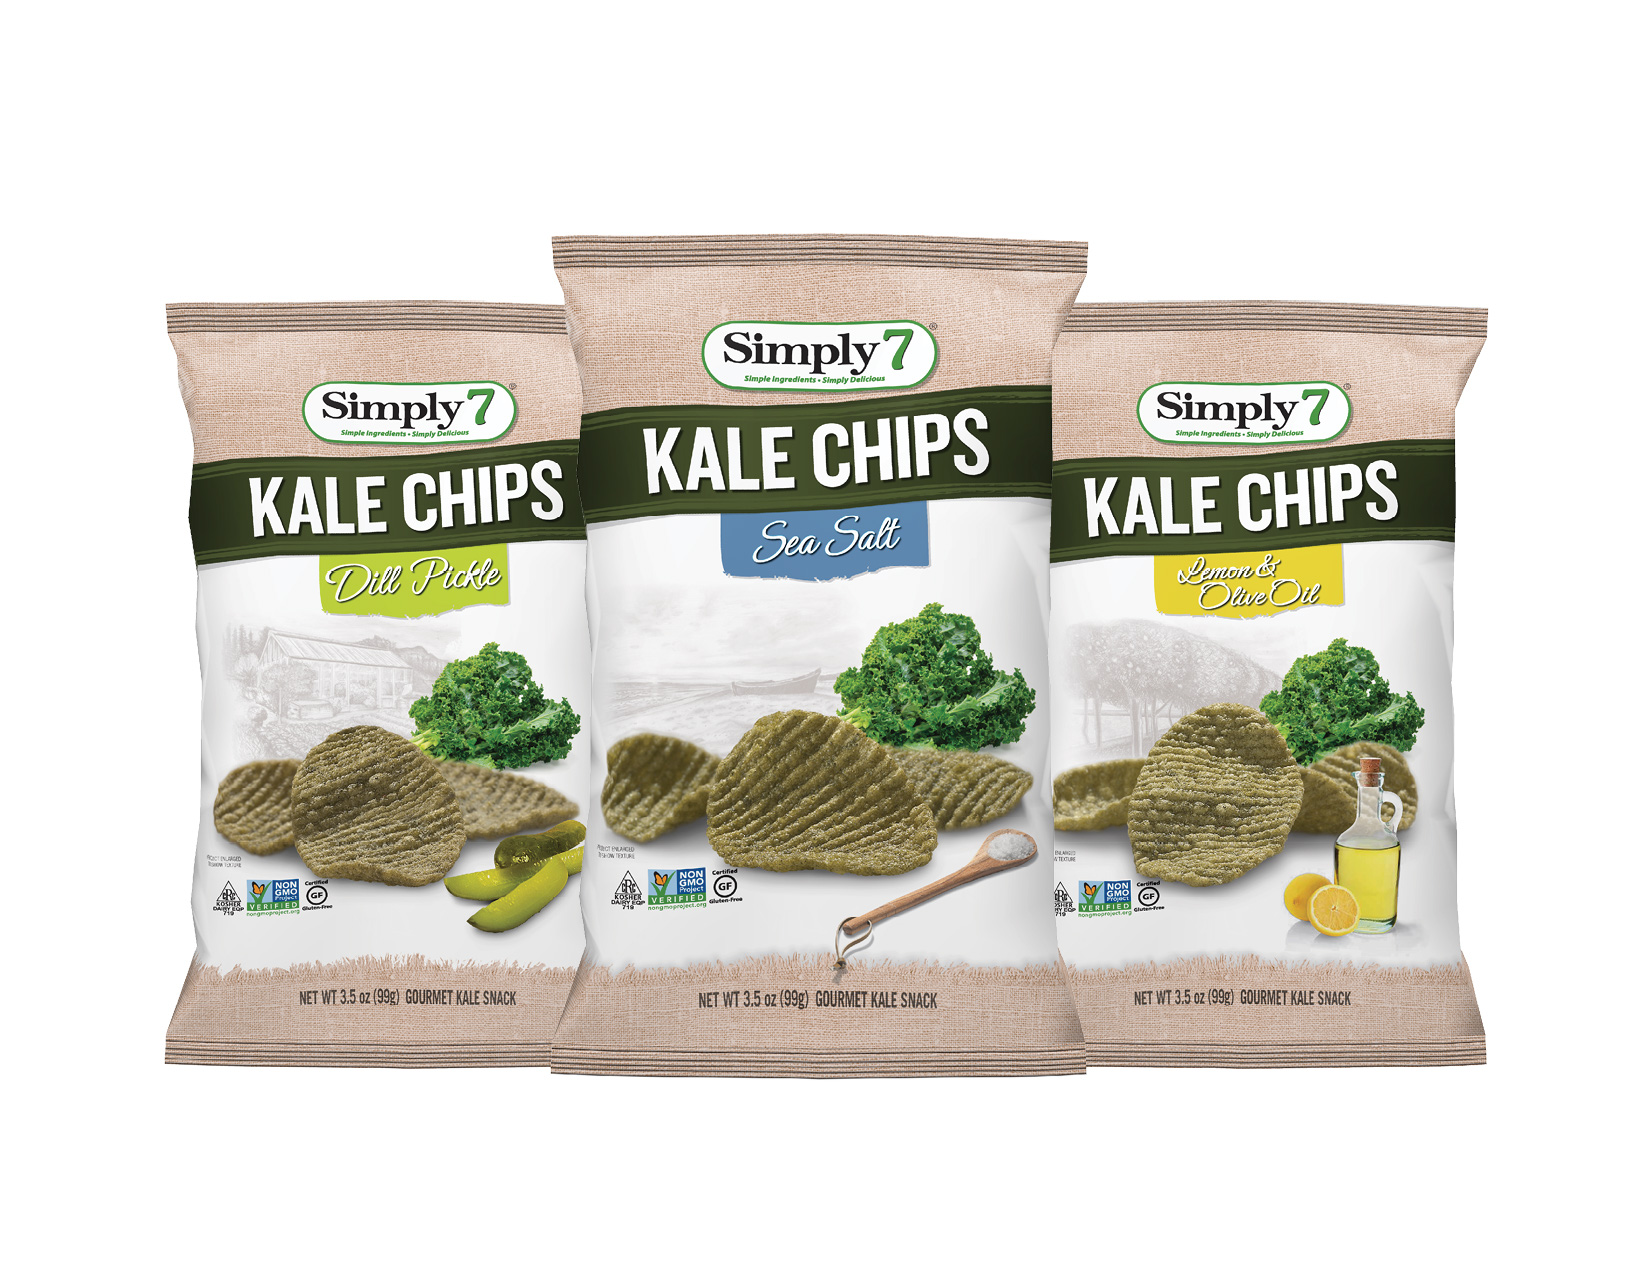 Simply7 Kale Chips — Food and Product Reviews — Food Blog | Bite ...